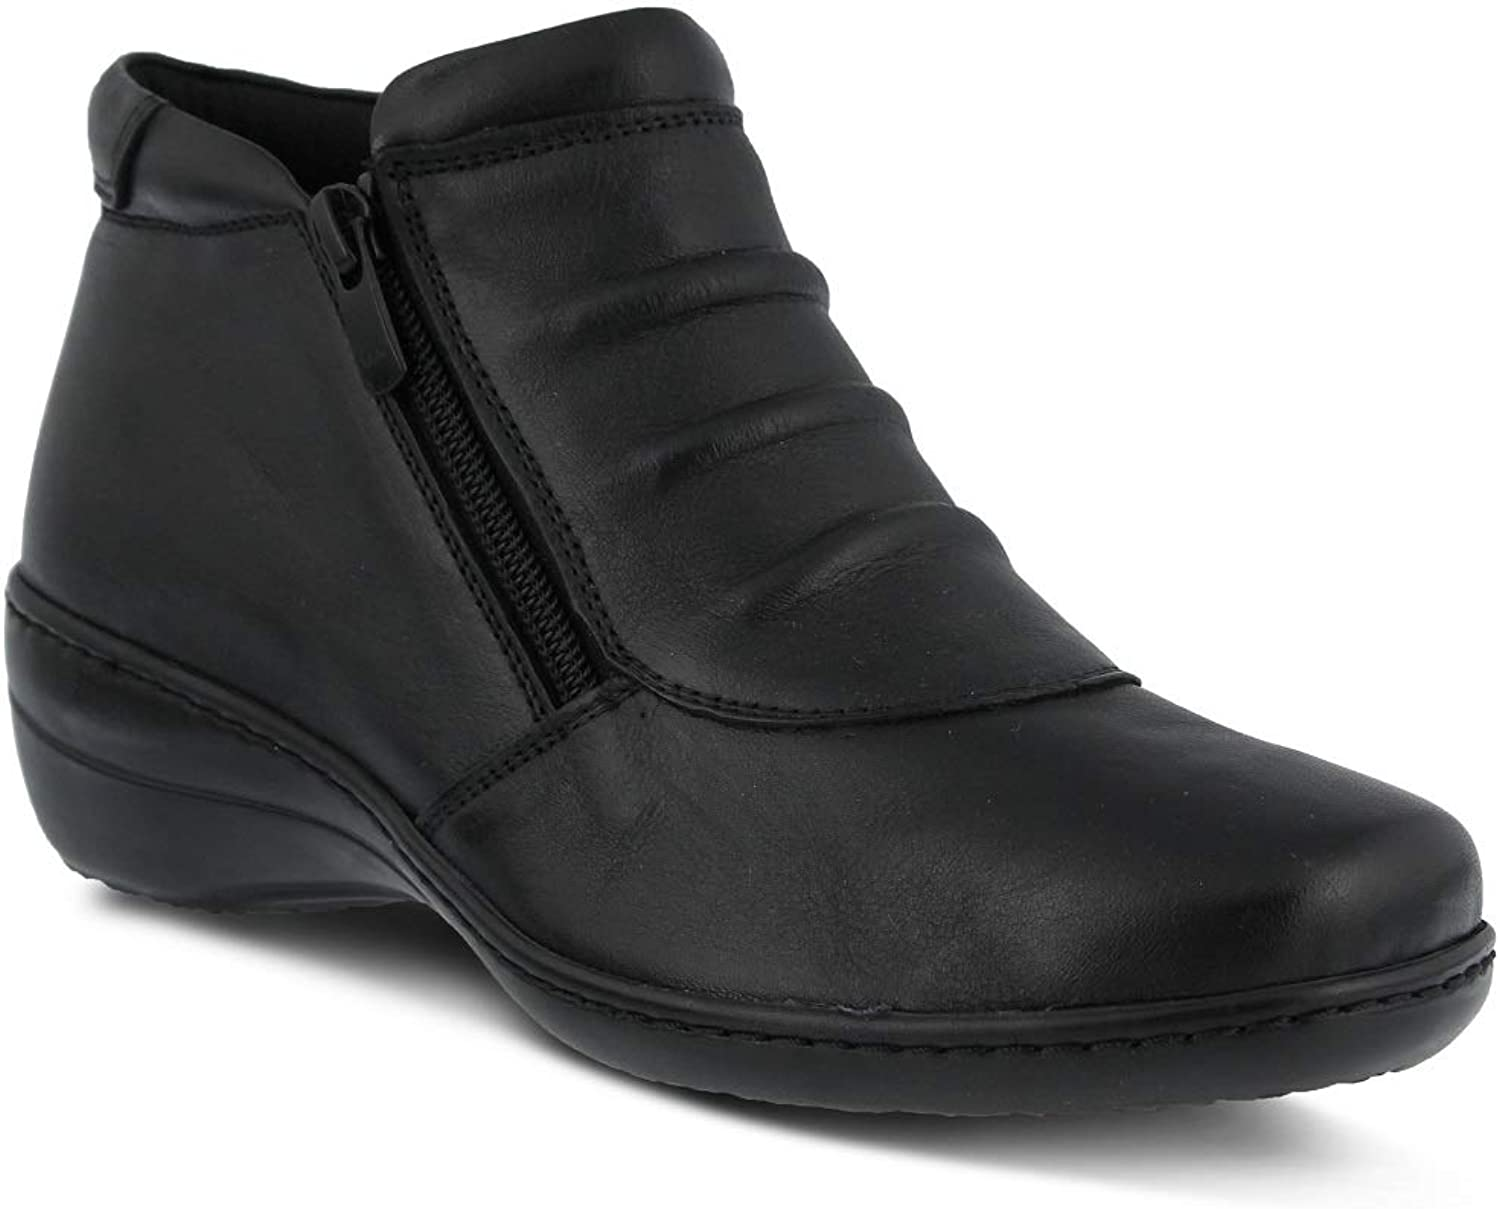 Spring Step Women's Briony Bootie   color Black   Leather Bootie